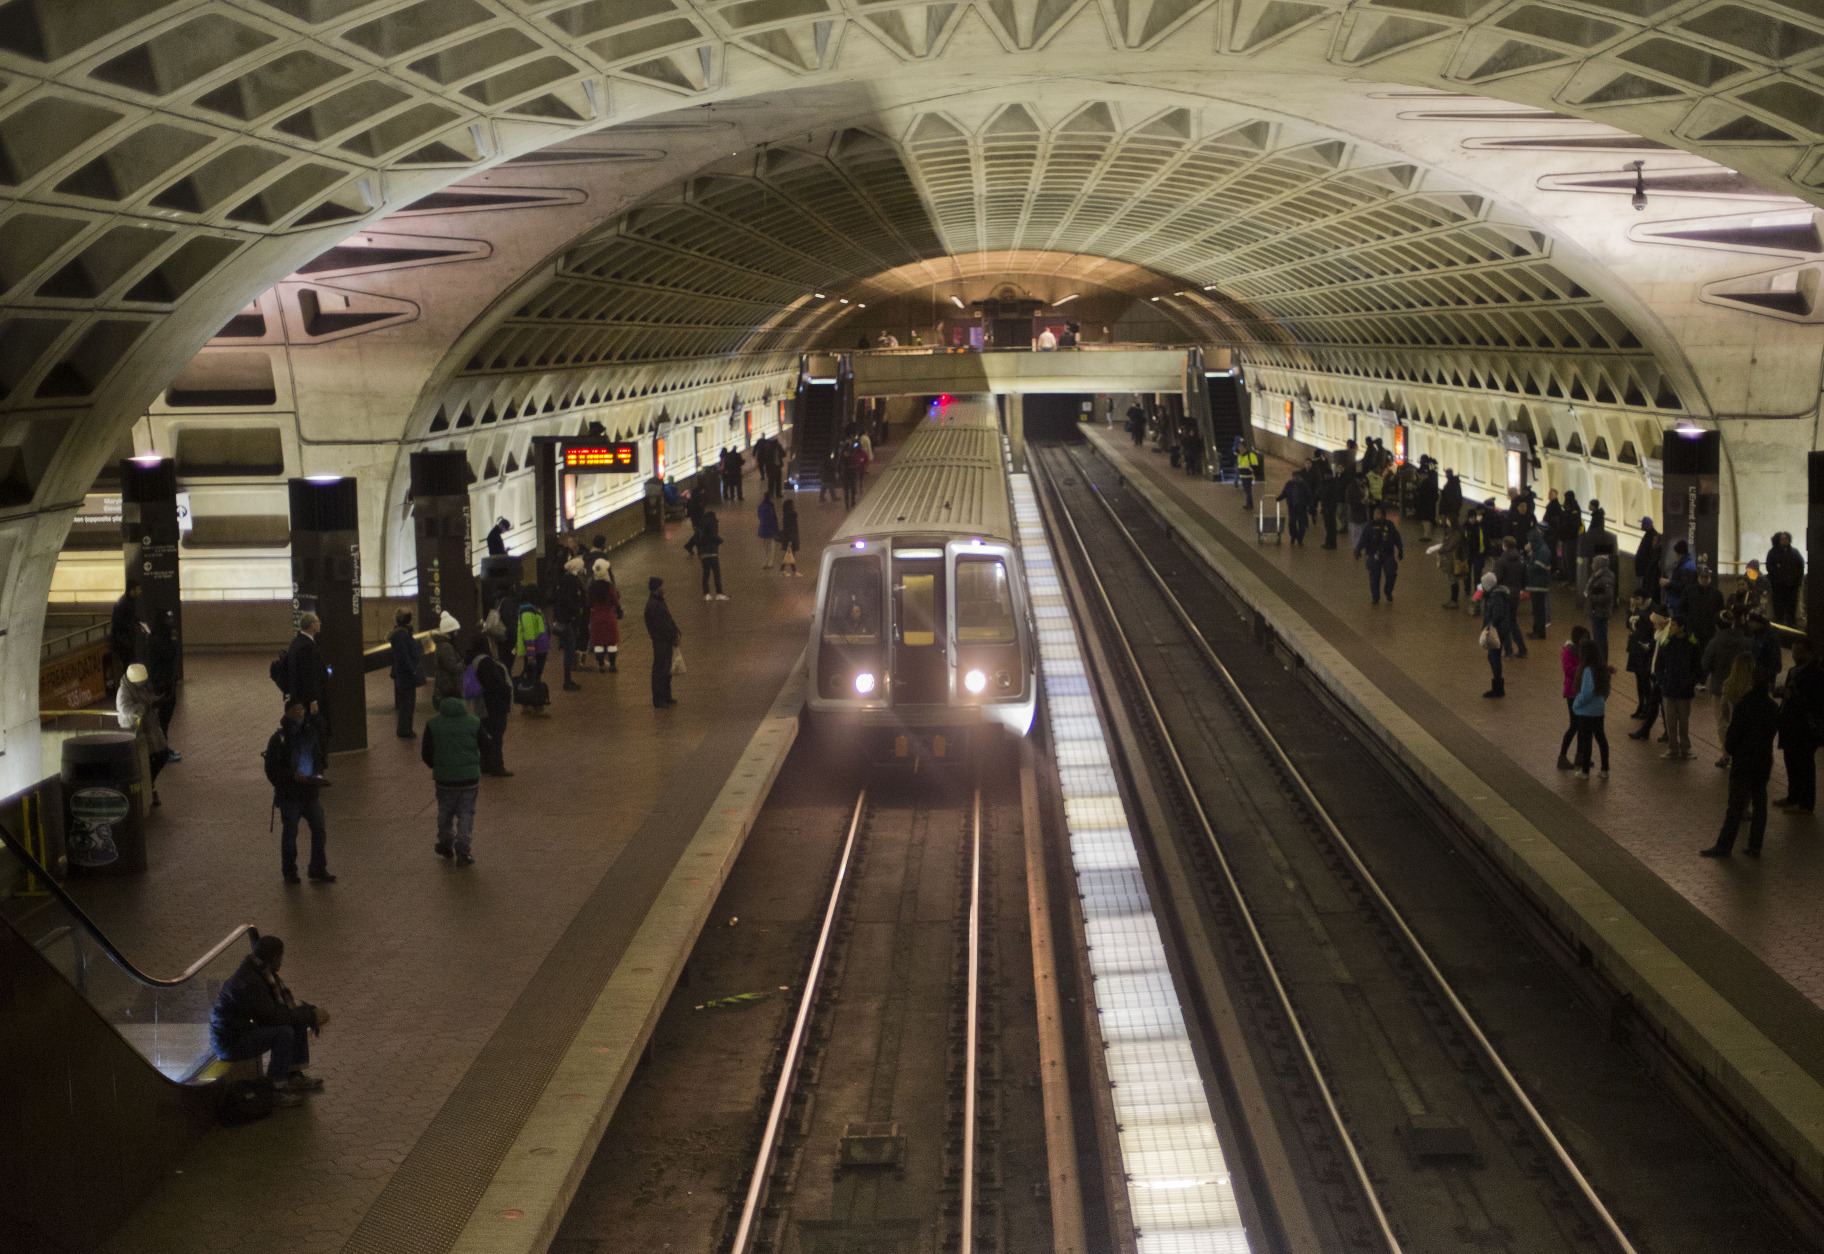 Metro gets update on radio systems and cell coverage